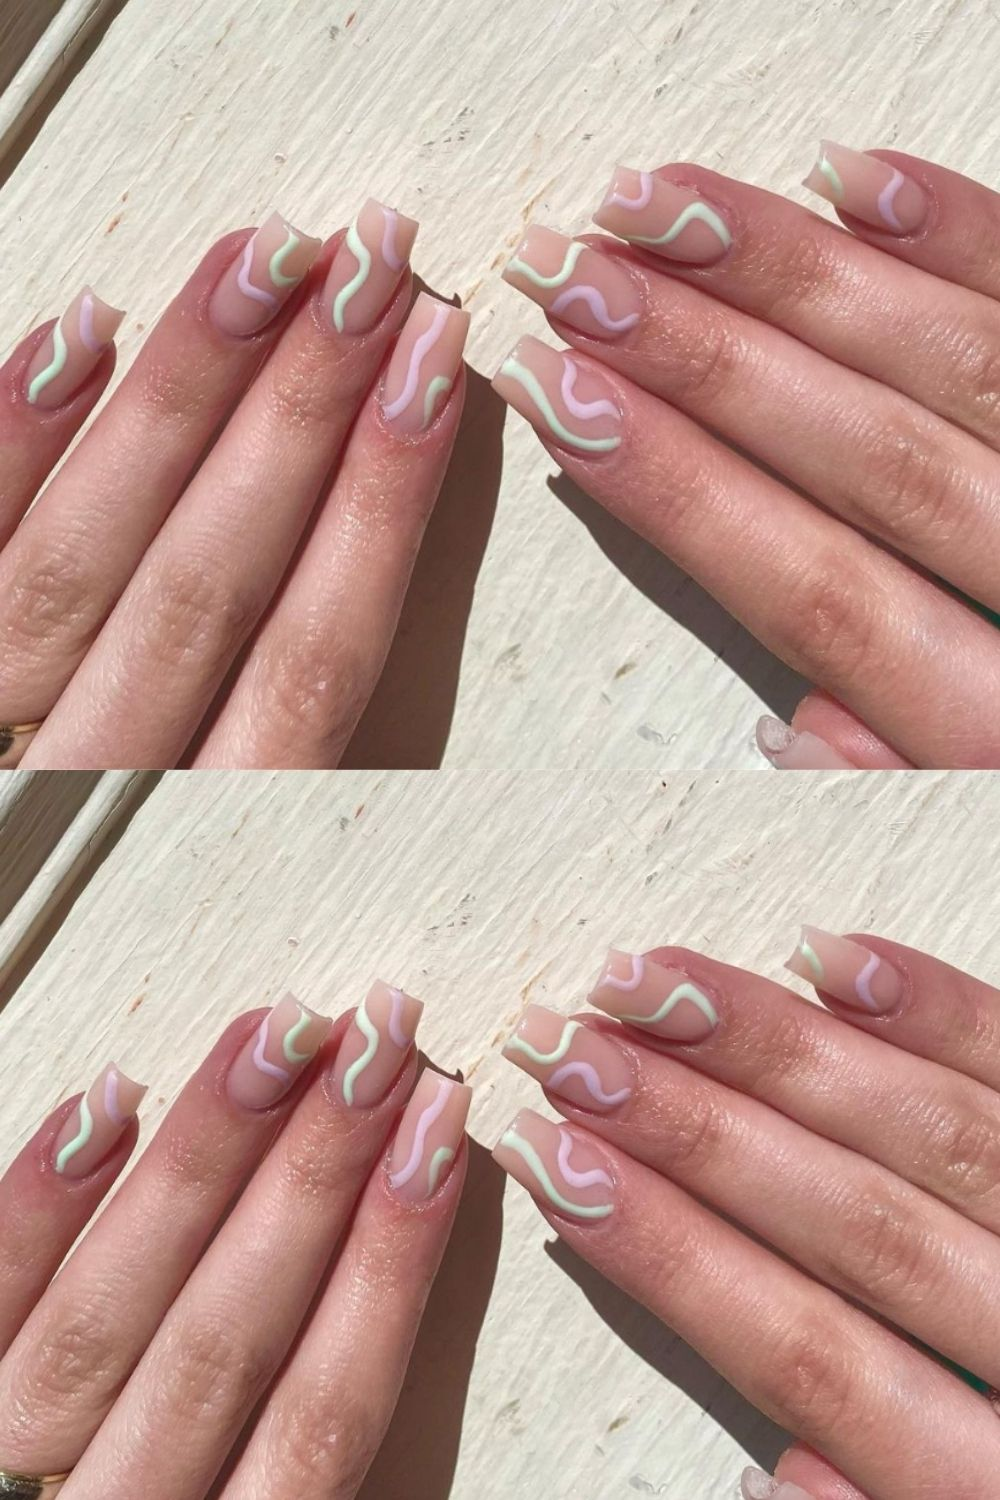 Pretty Tapered Square Nails To Style In Summer 2021!